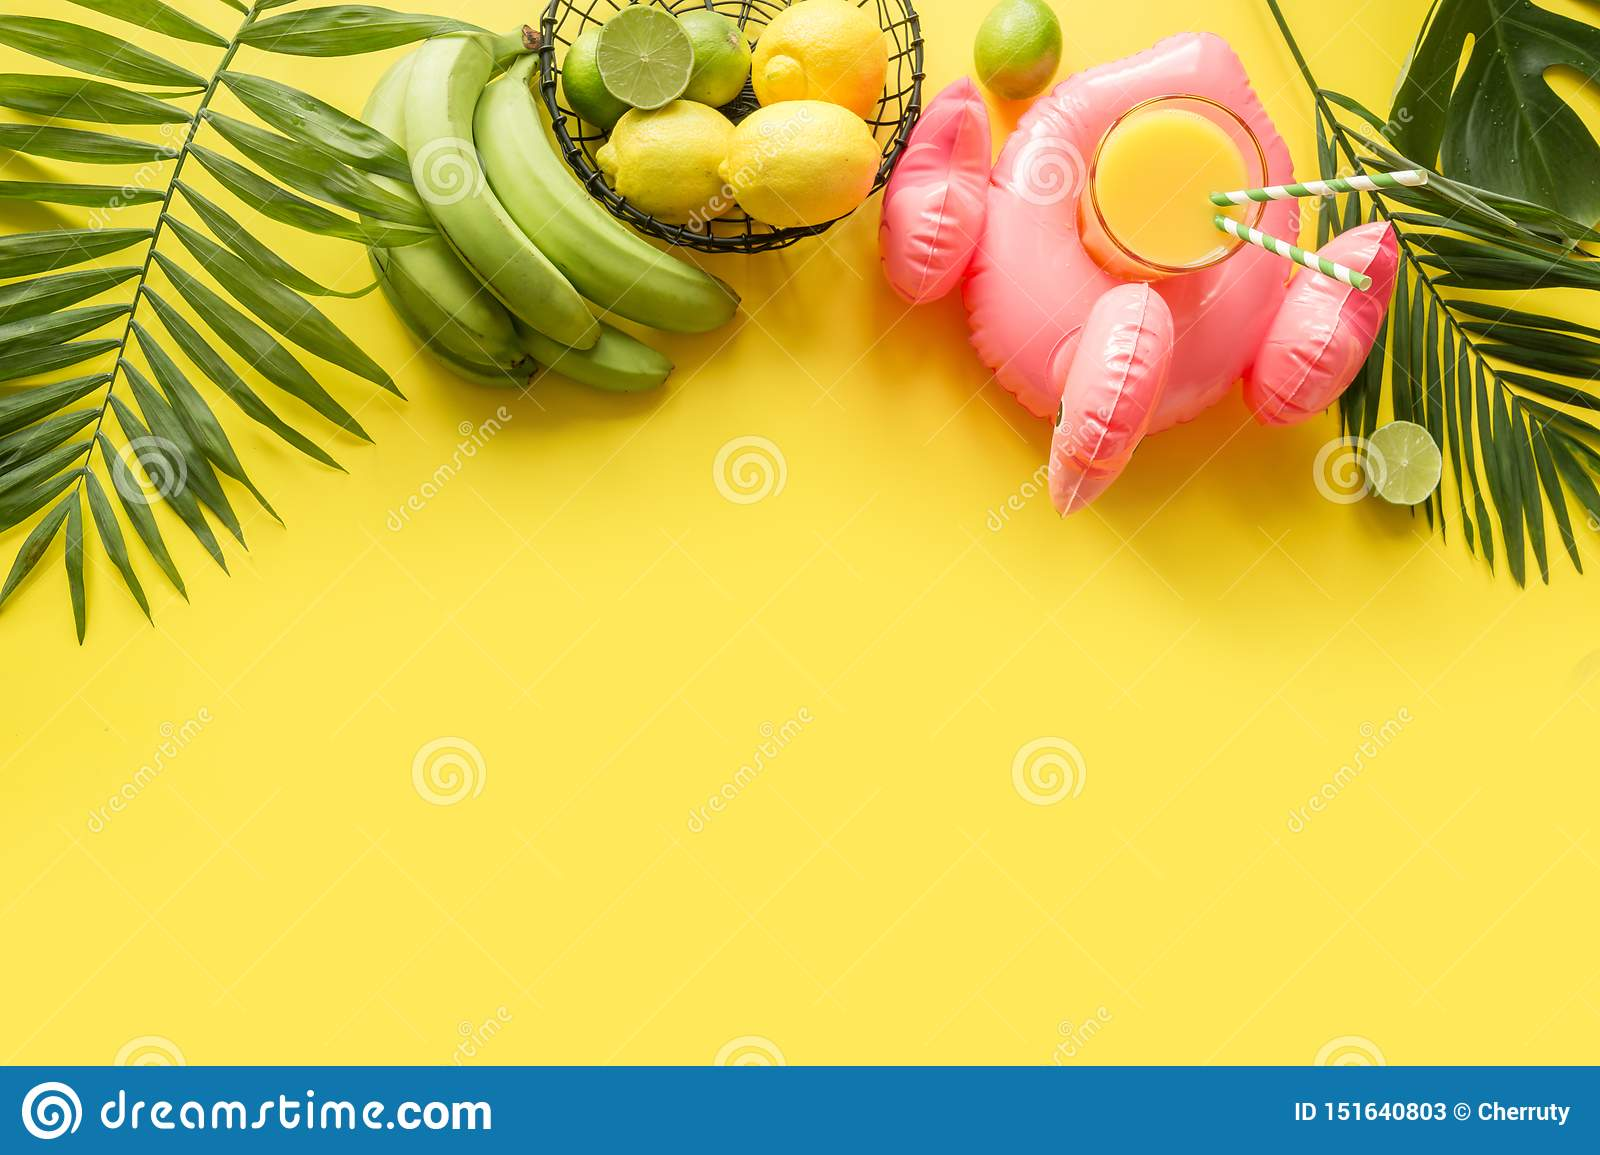 COSTUME TROPICAL HOLIDAY COCONUT PALM TREE /& FLAMINGO GLASSES SUNGLASSES PARTY